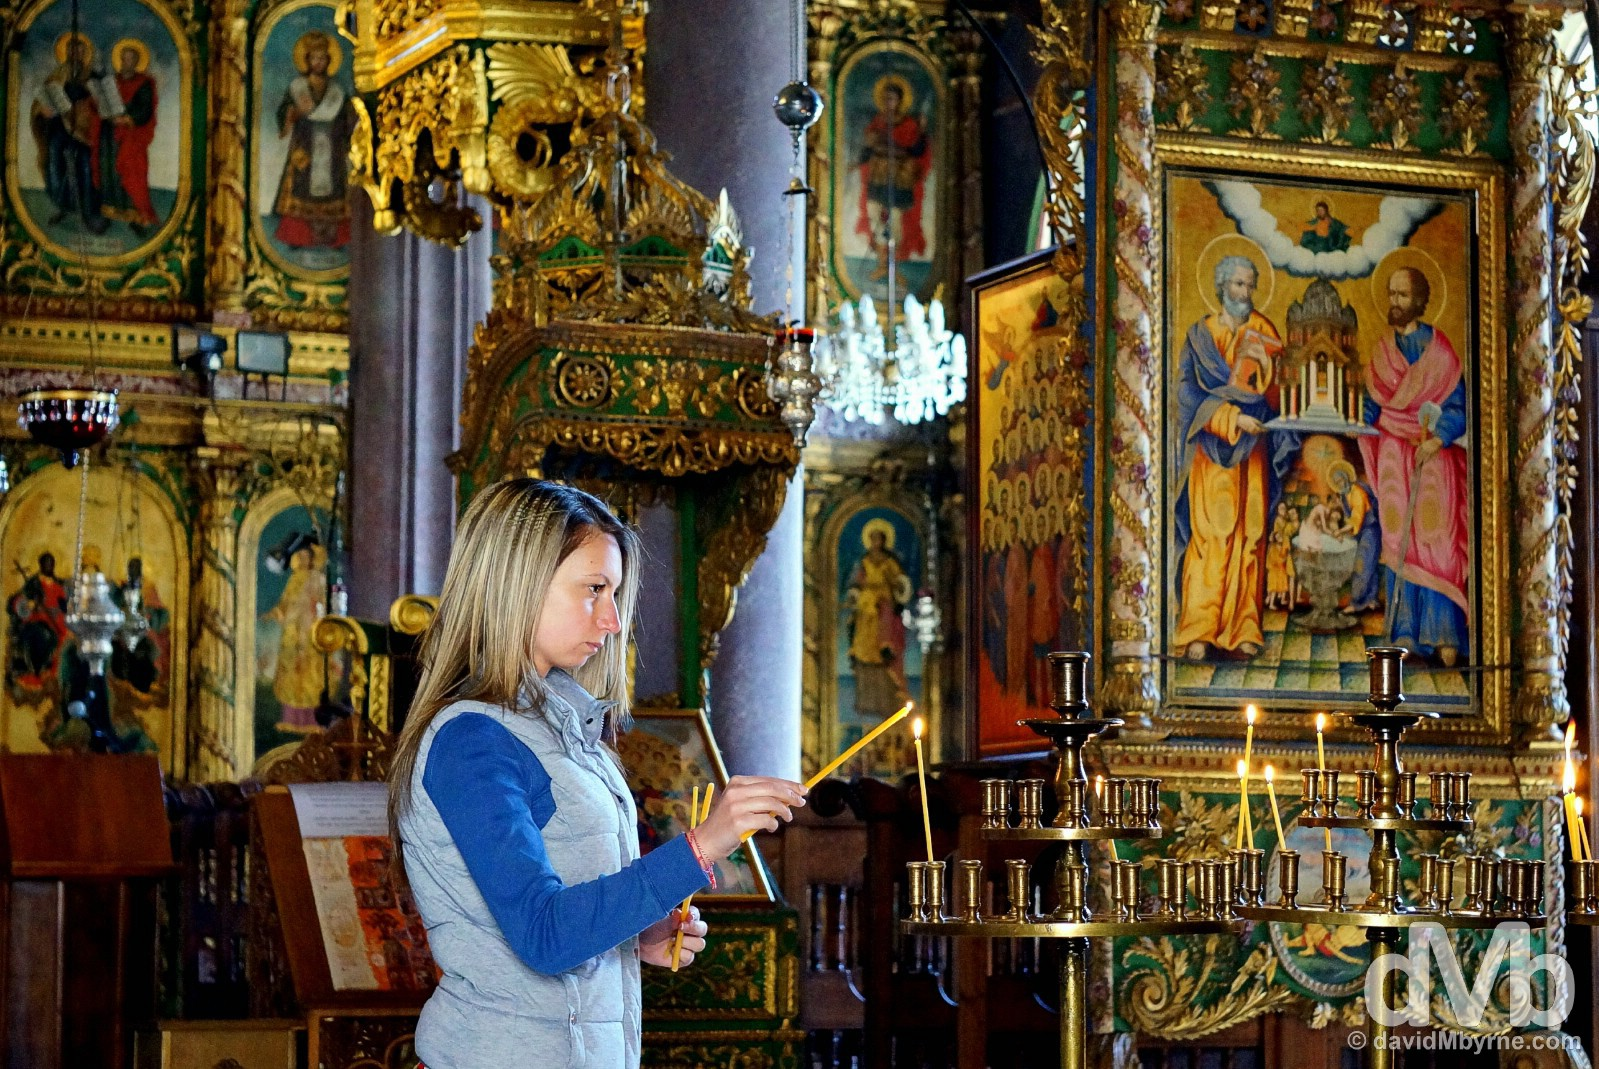 Lighting a candle in the Church of St Constantine and Helena in Old Town Plovdiv, Bulgaria. March 30, 2015.